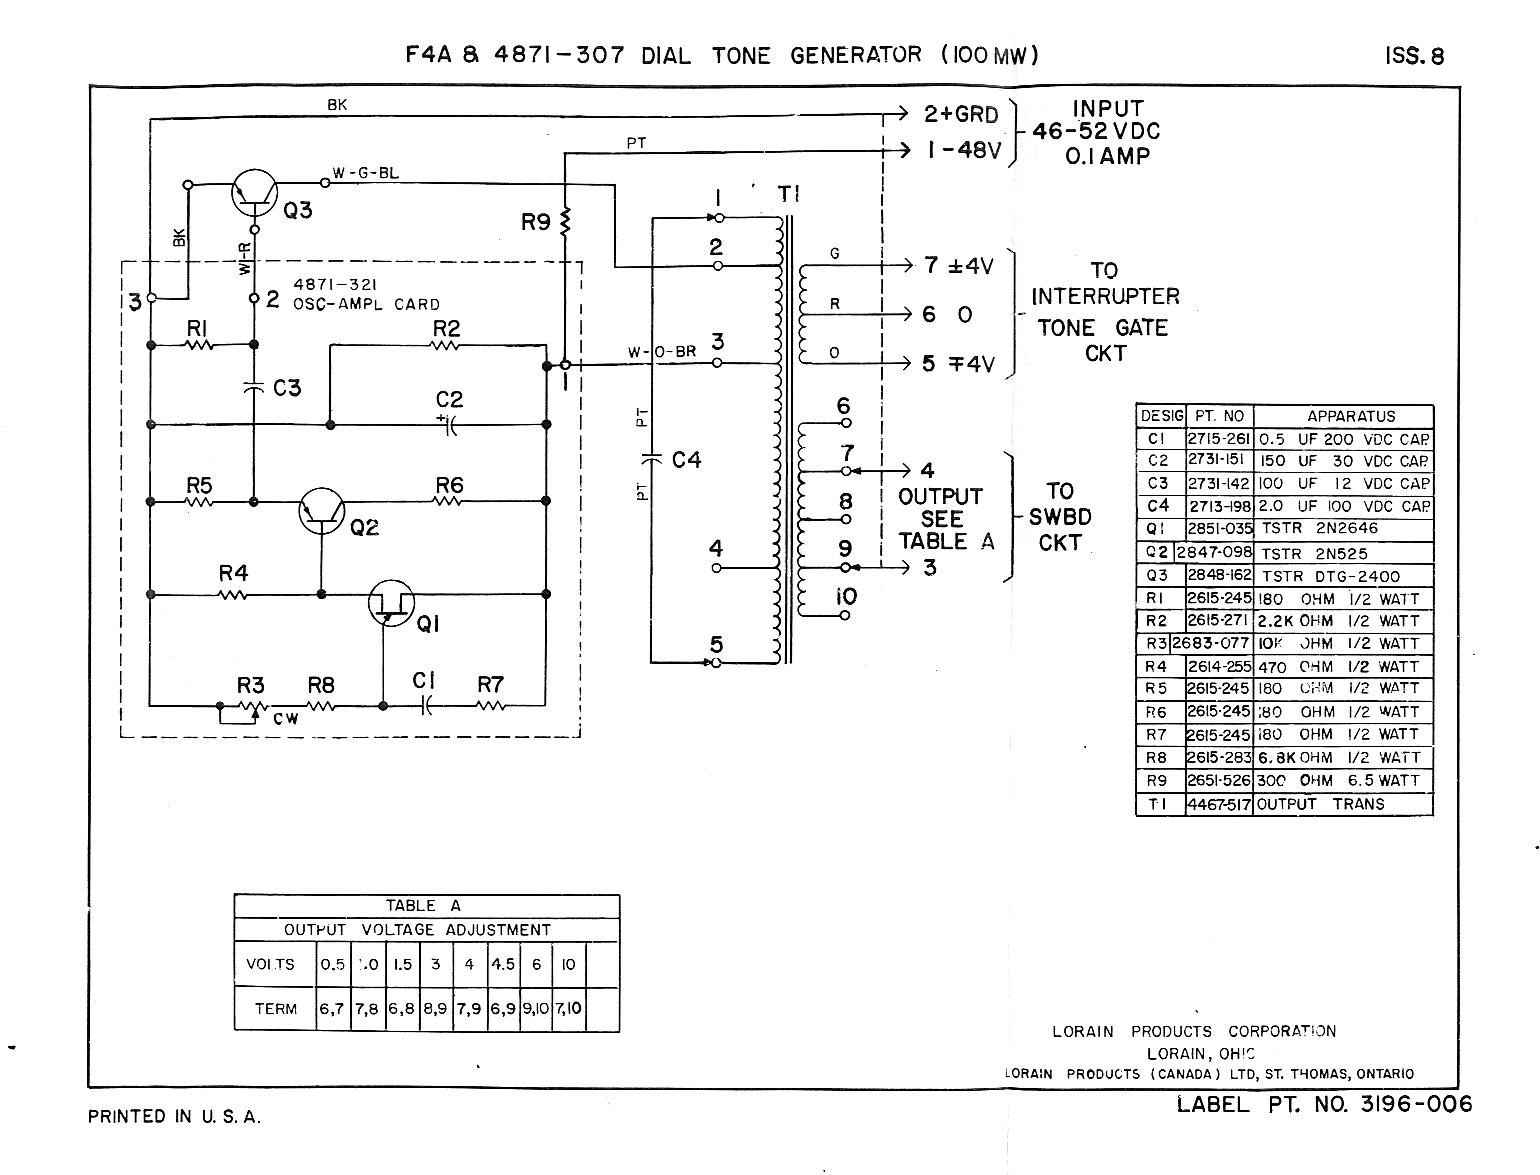 lorain_f4a telephone technical references Residential Telephone Wiring Diagram at bakdesigns.co